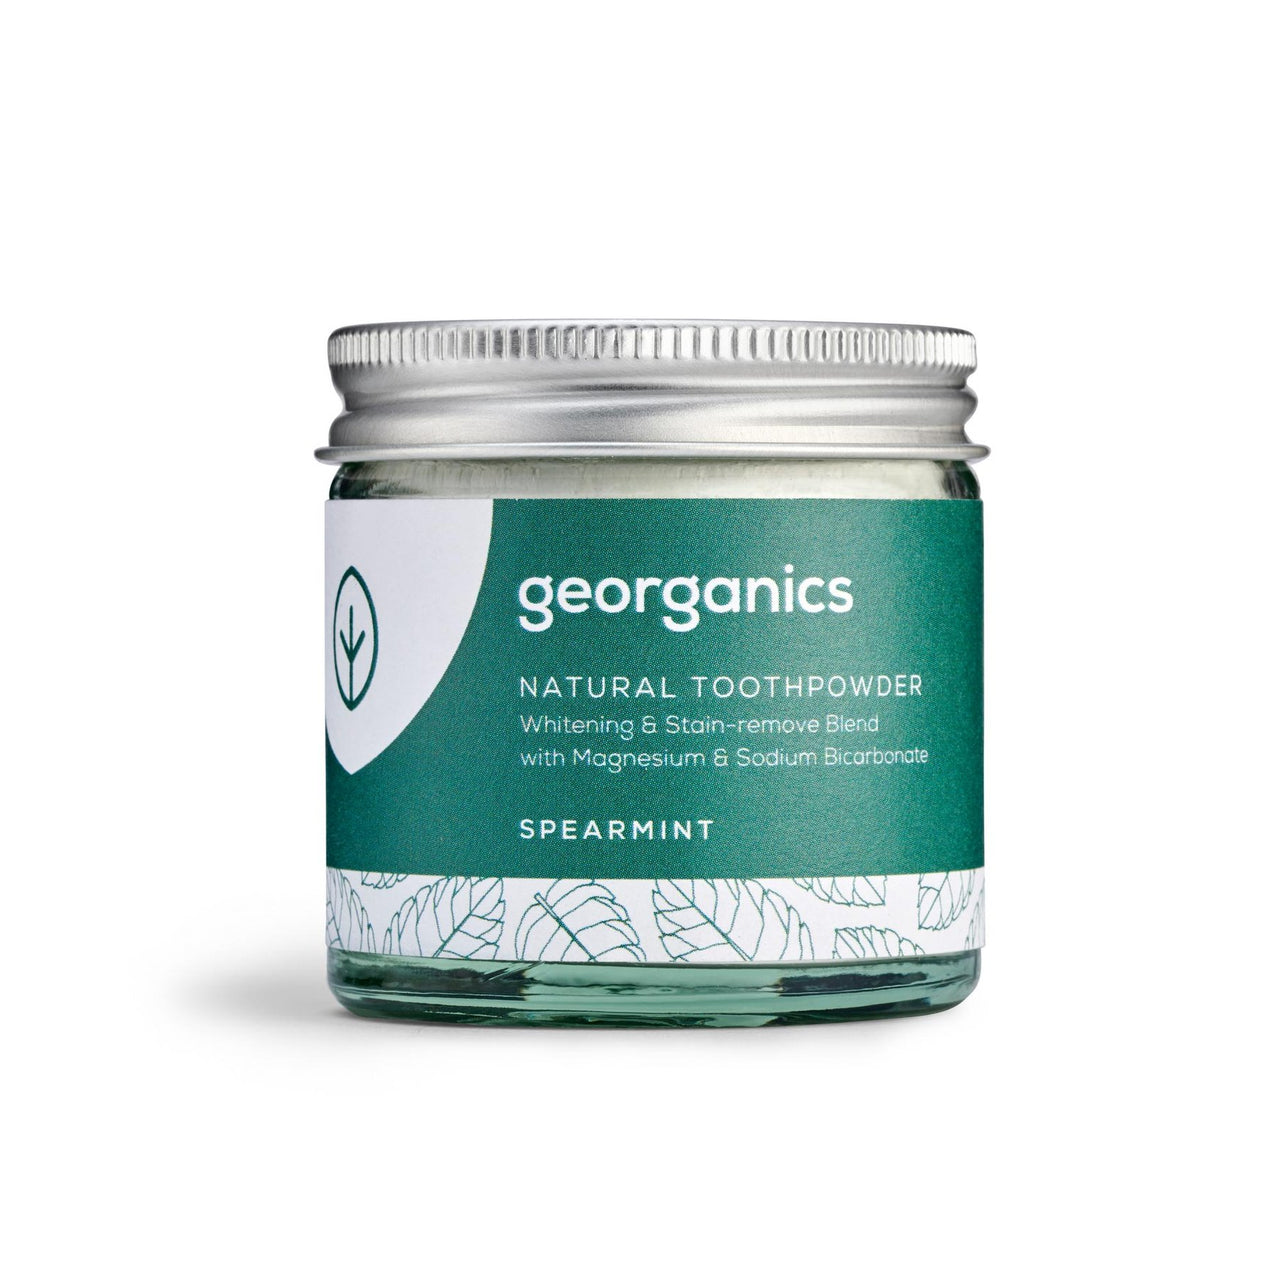 Natural Toothpowder - Spearmint